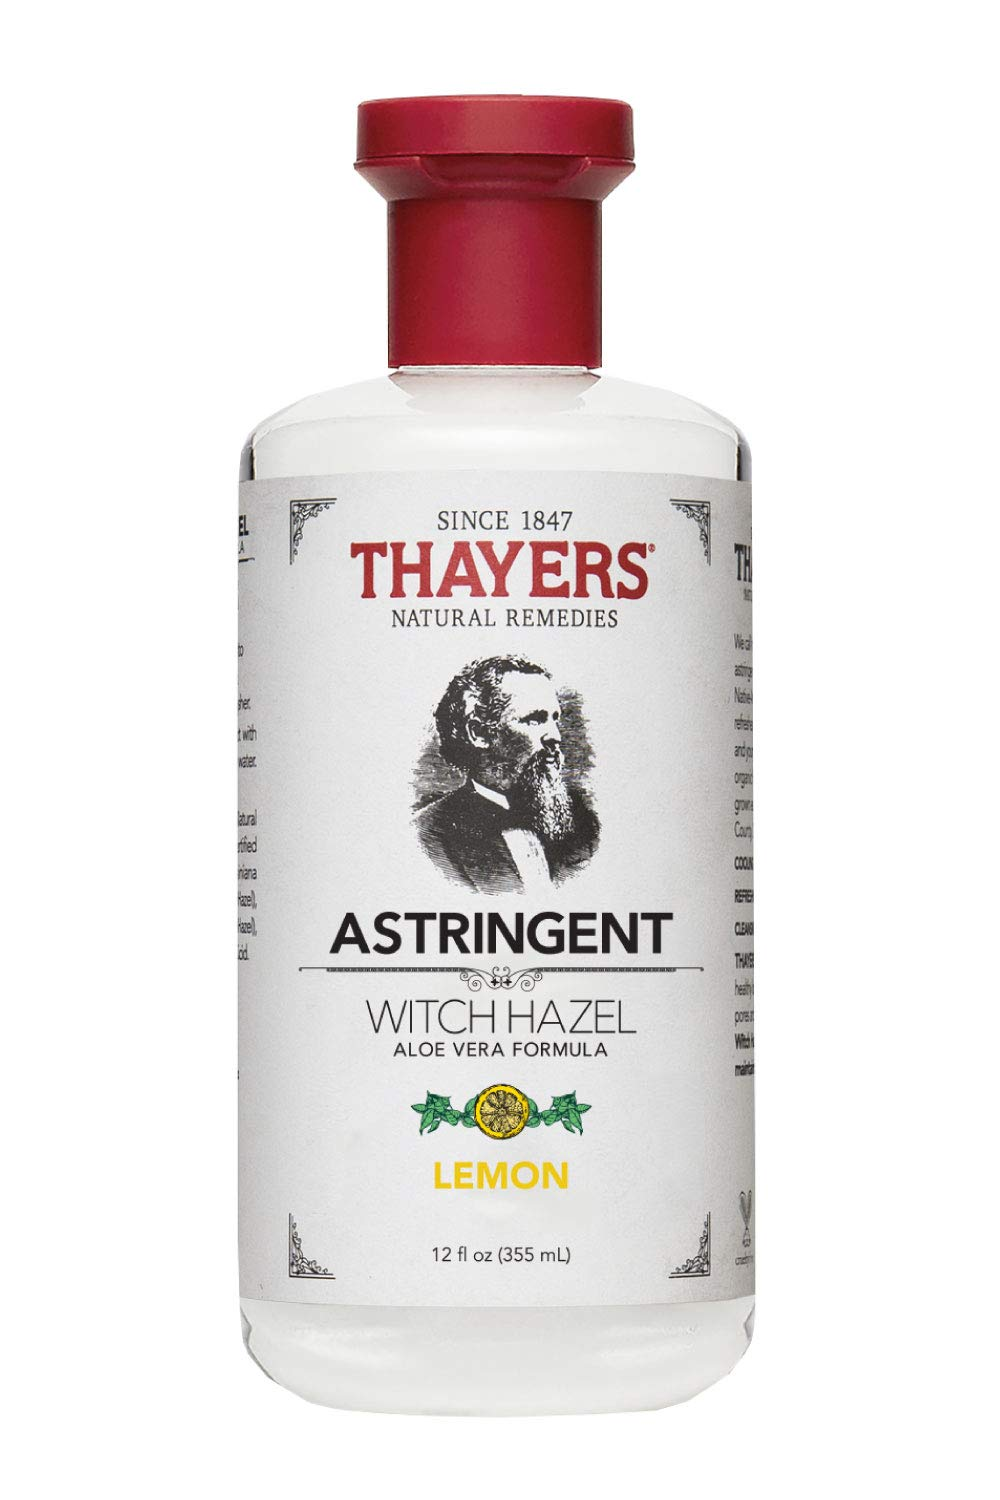 Thayers Witch Hazel Astringent with Aloe Vera Formula, Lemon, 12 Fluid Ounce - Packaging may vary by THAYERS